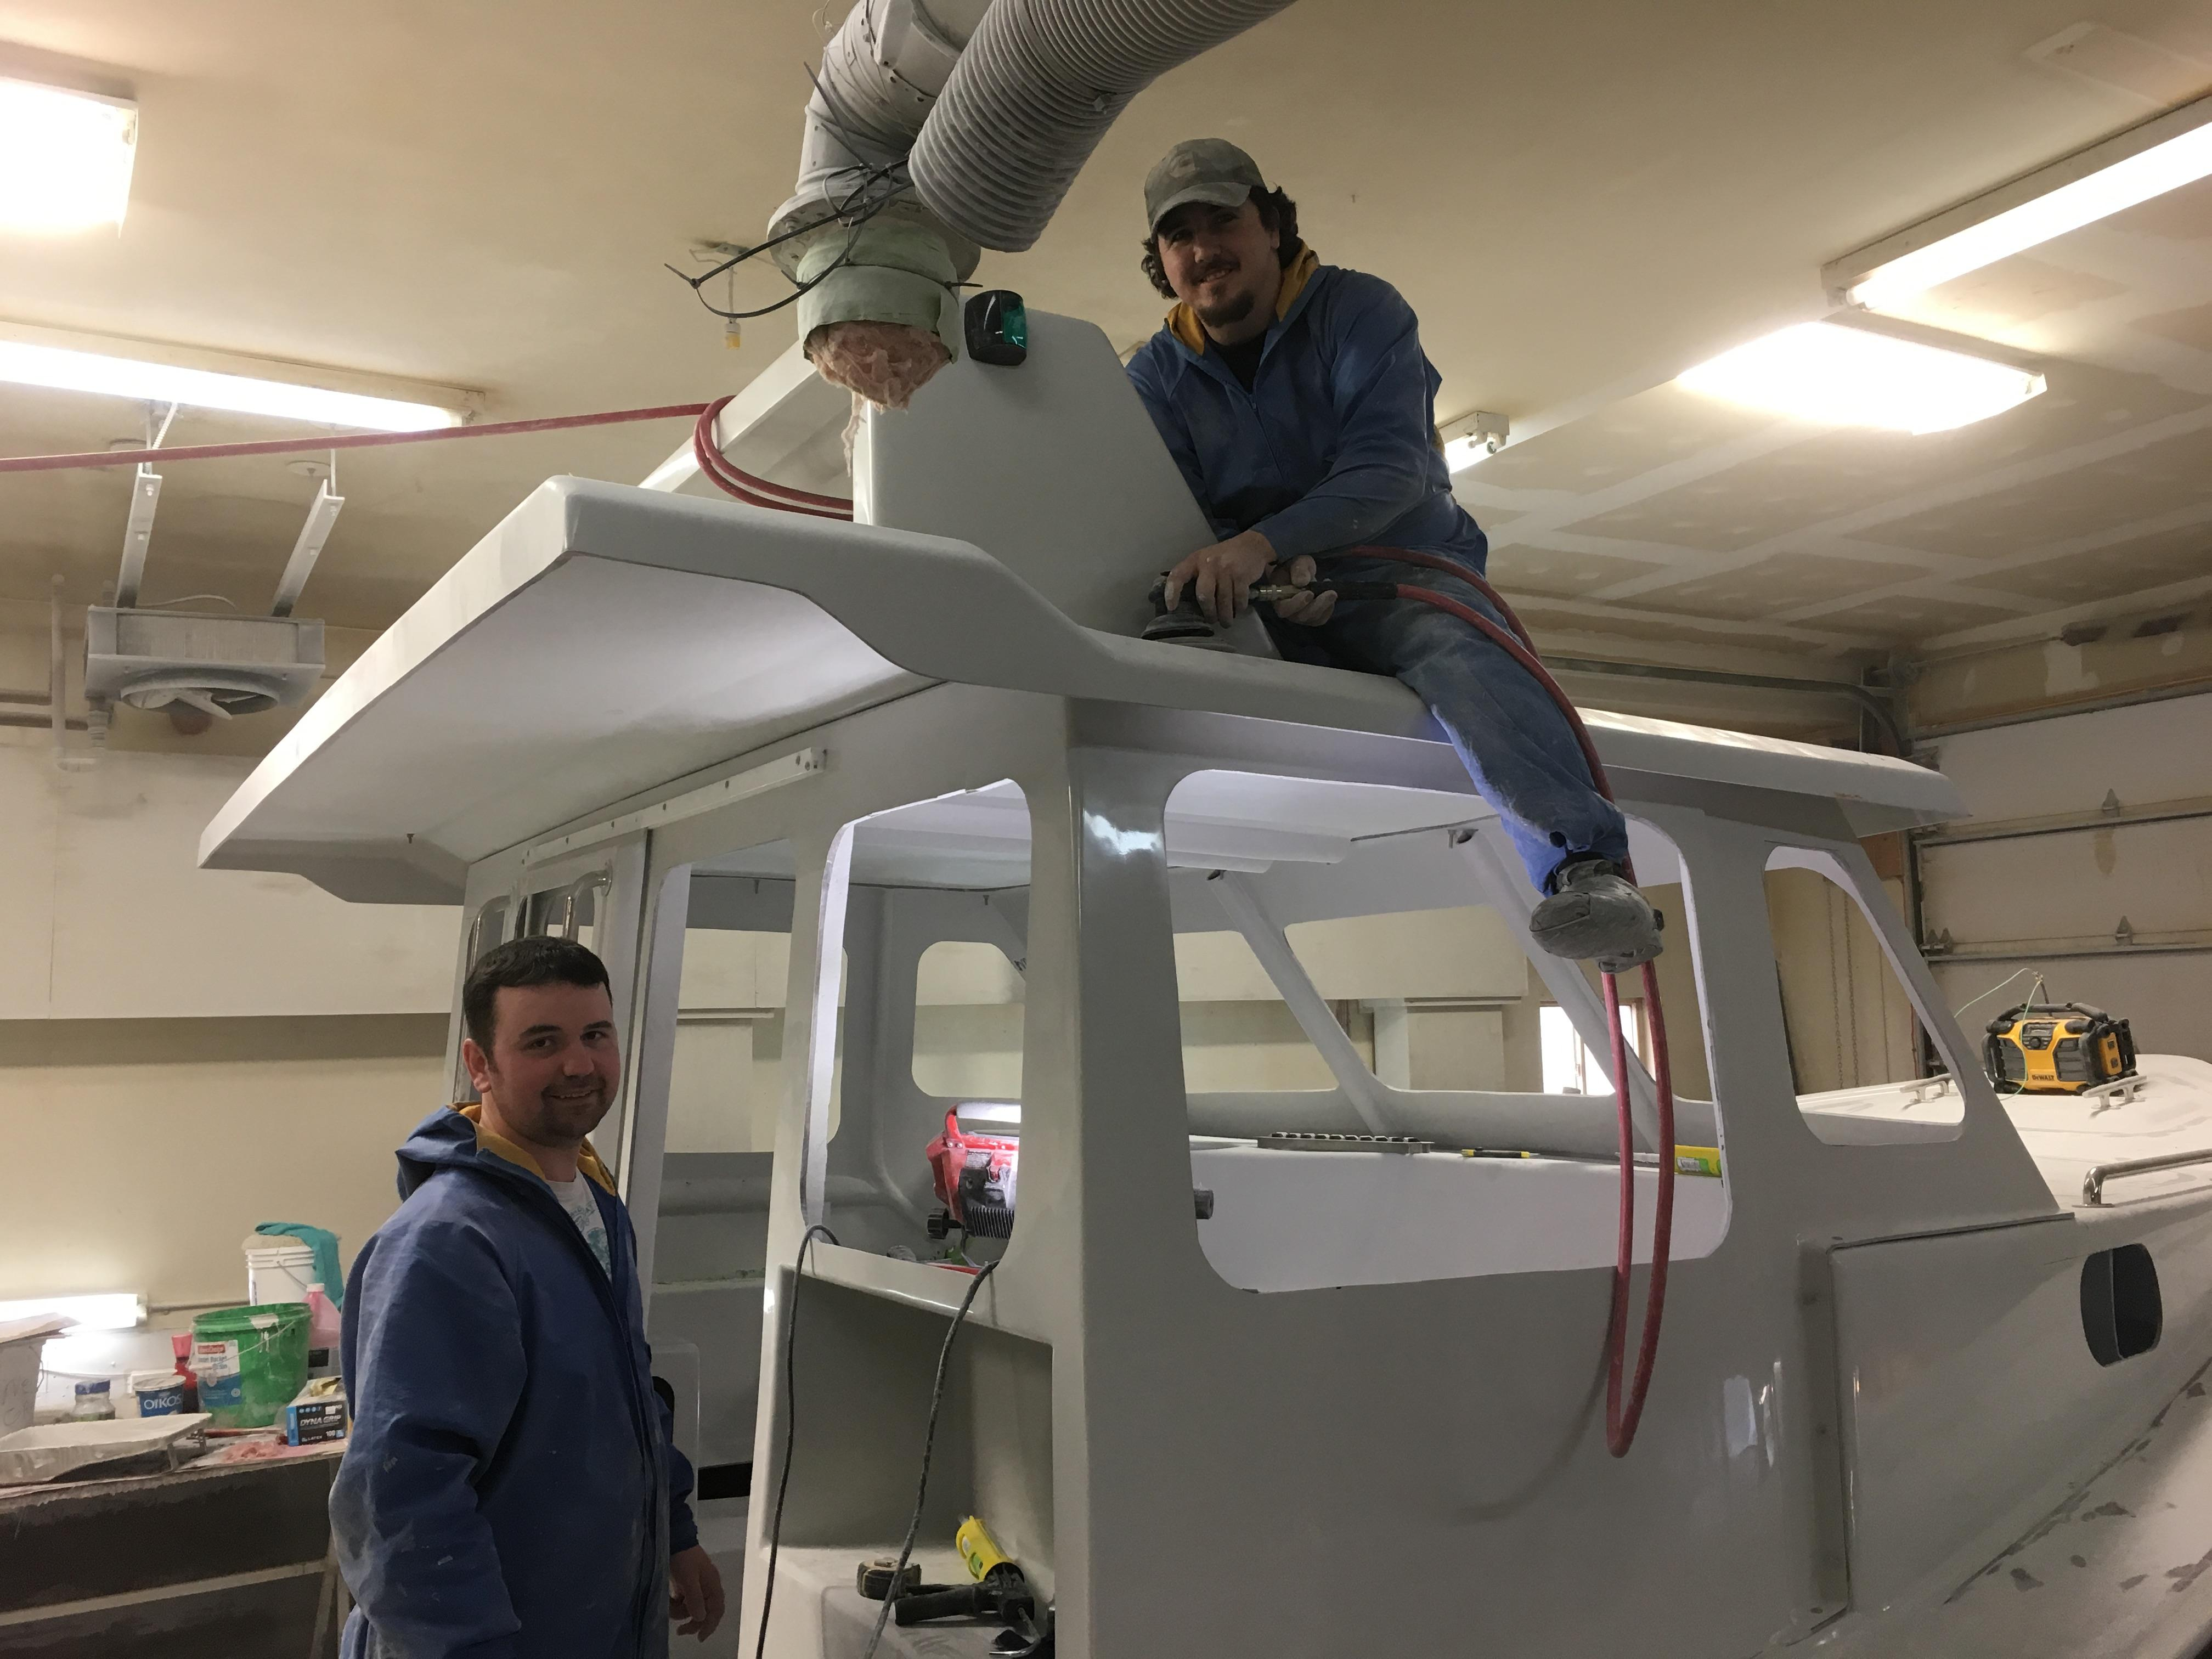 'The biggest challenge in the industry ... is attracting young people into the industry to pursue a career,' says Edwards. (Submitted by Hutt Brothers Boat Shop)